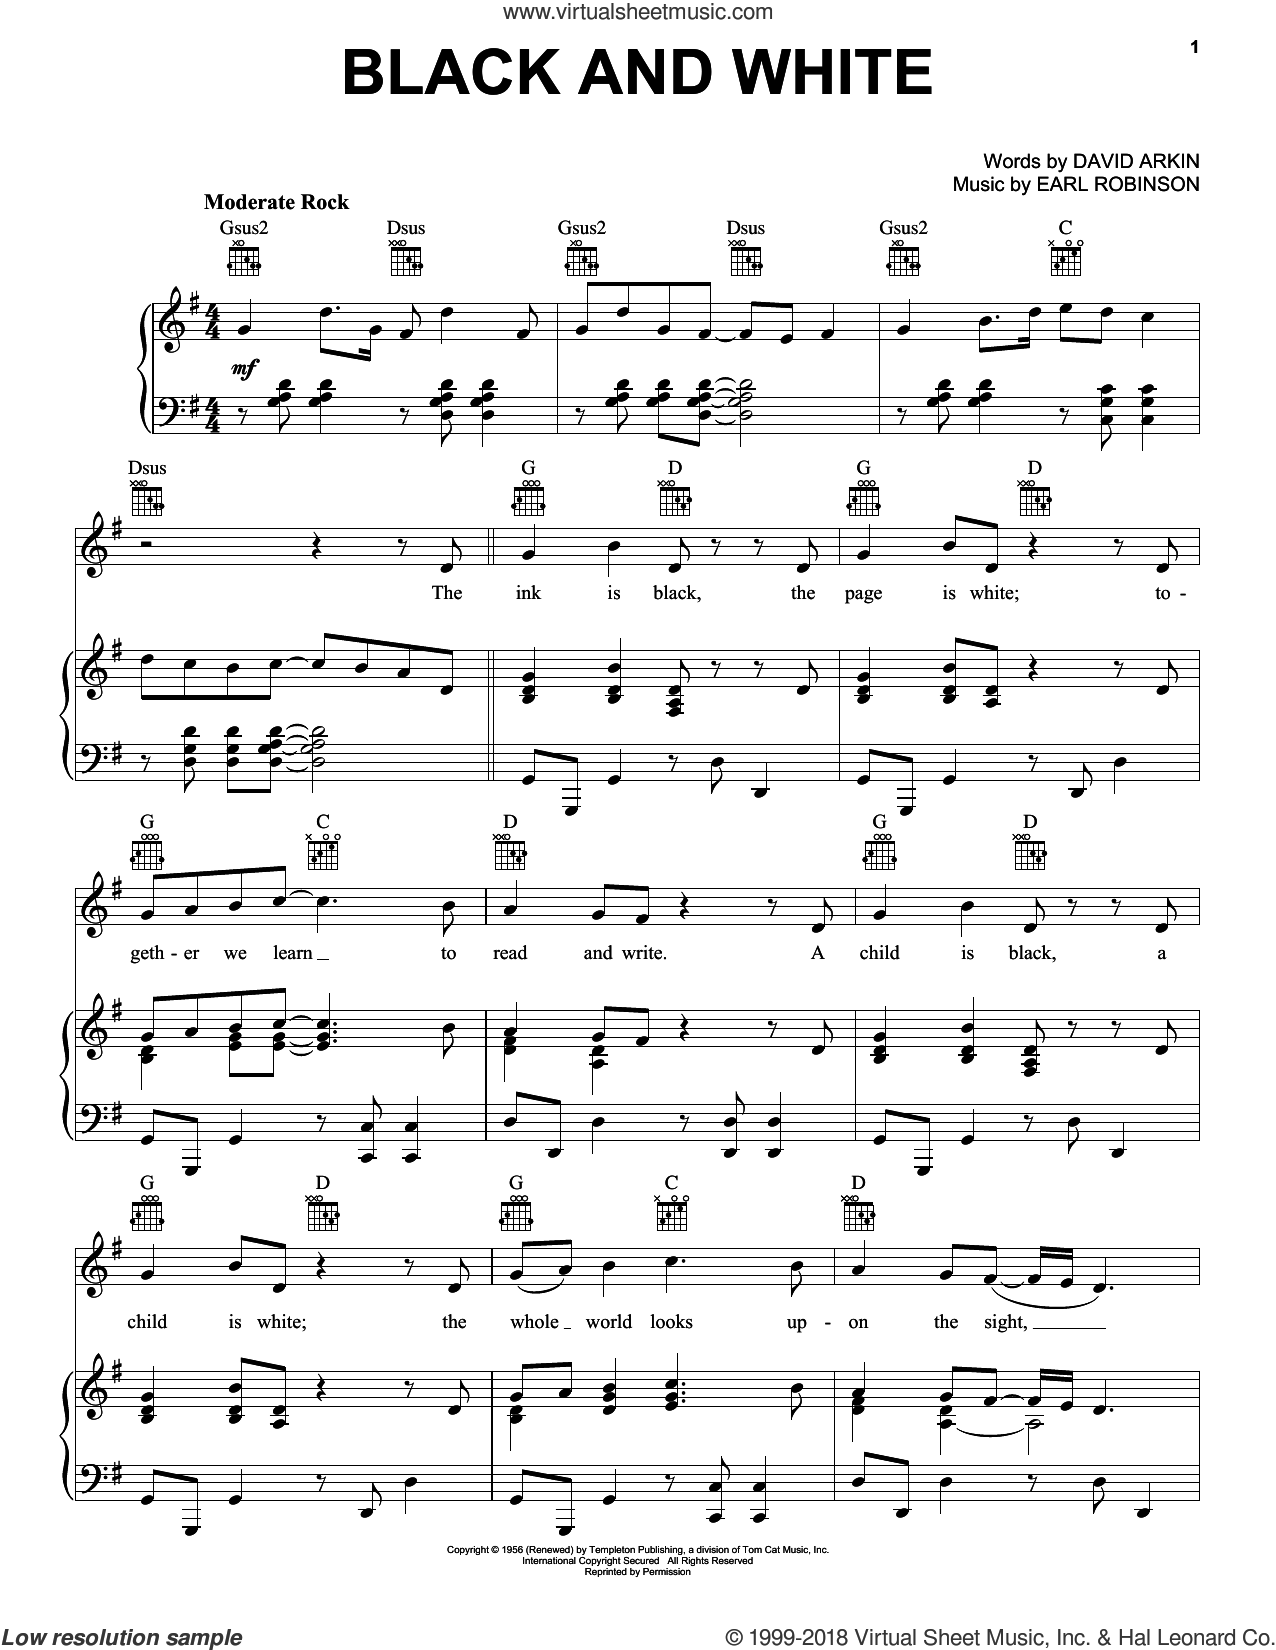 Black And White sheet music for voice, piano or guitar by Earl Robinson